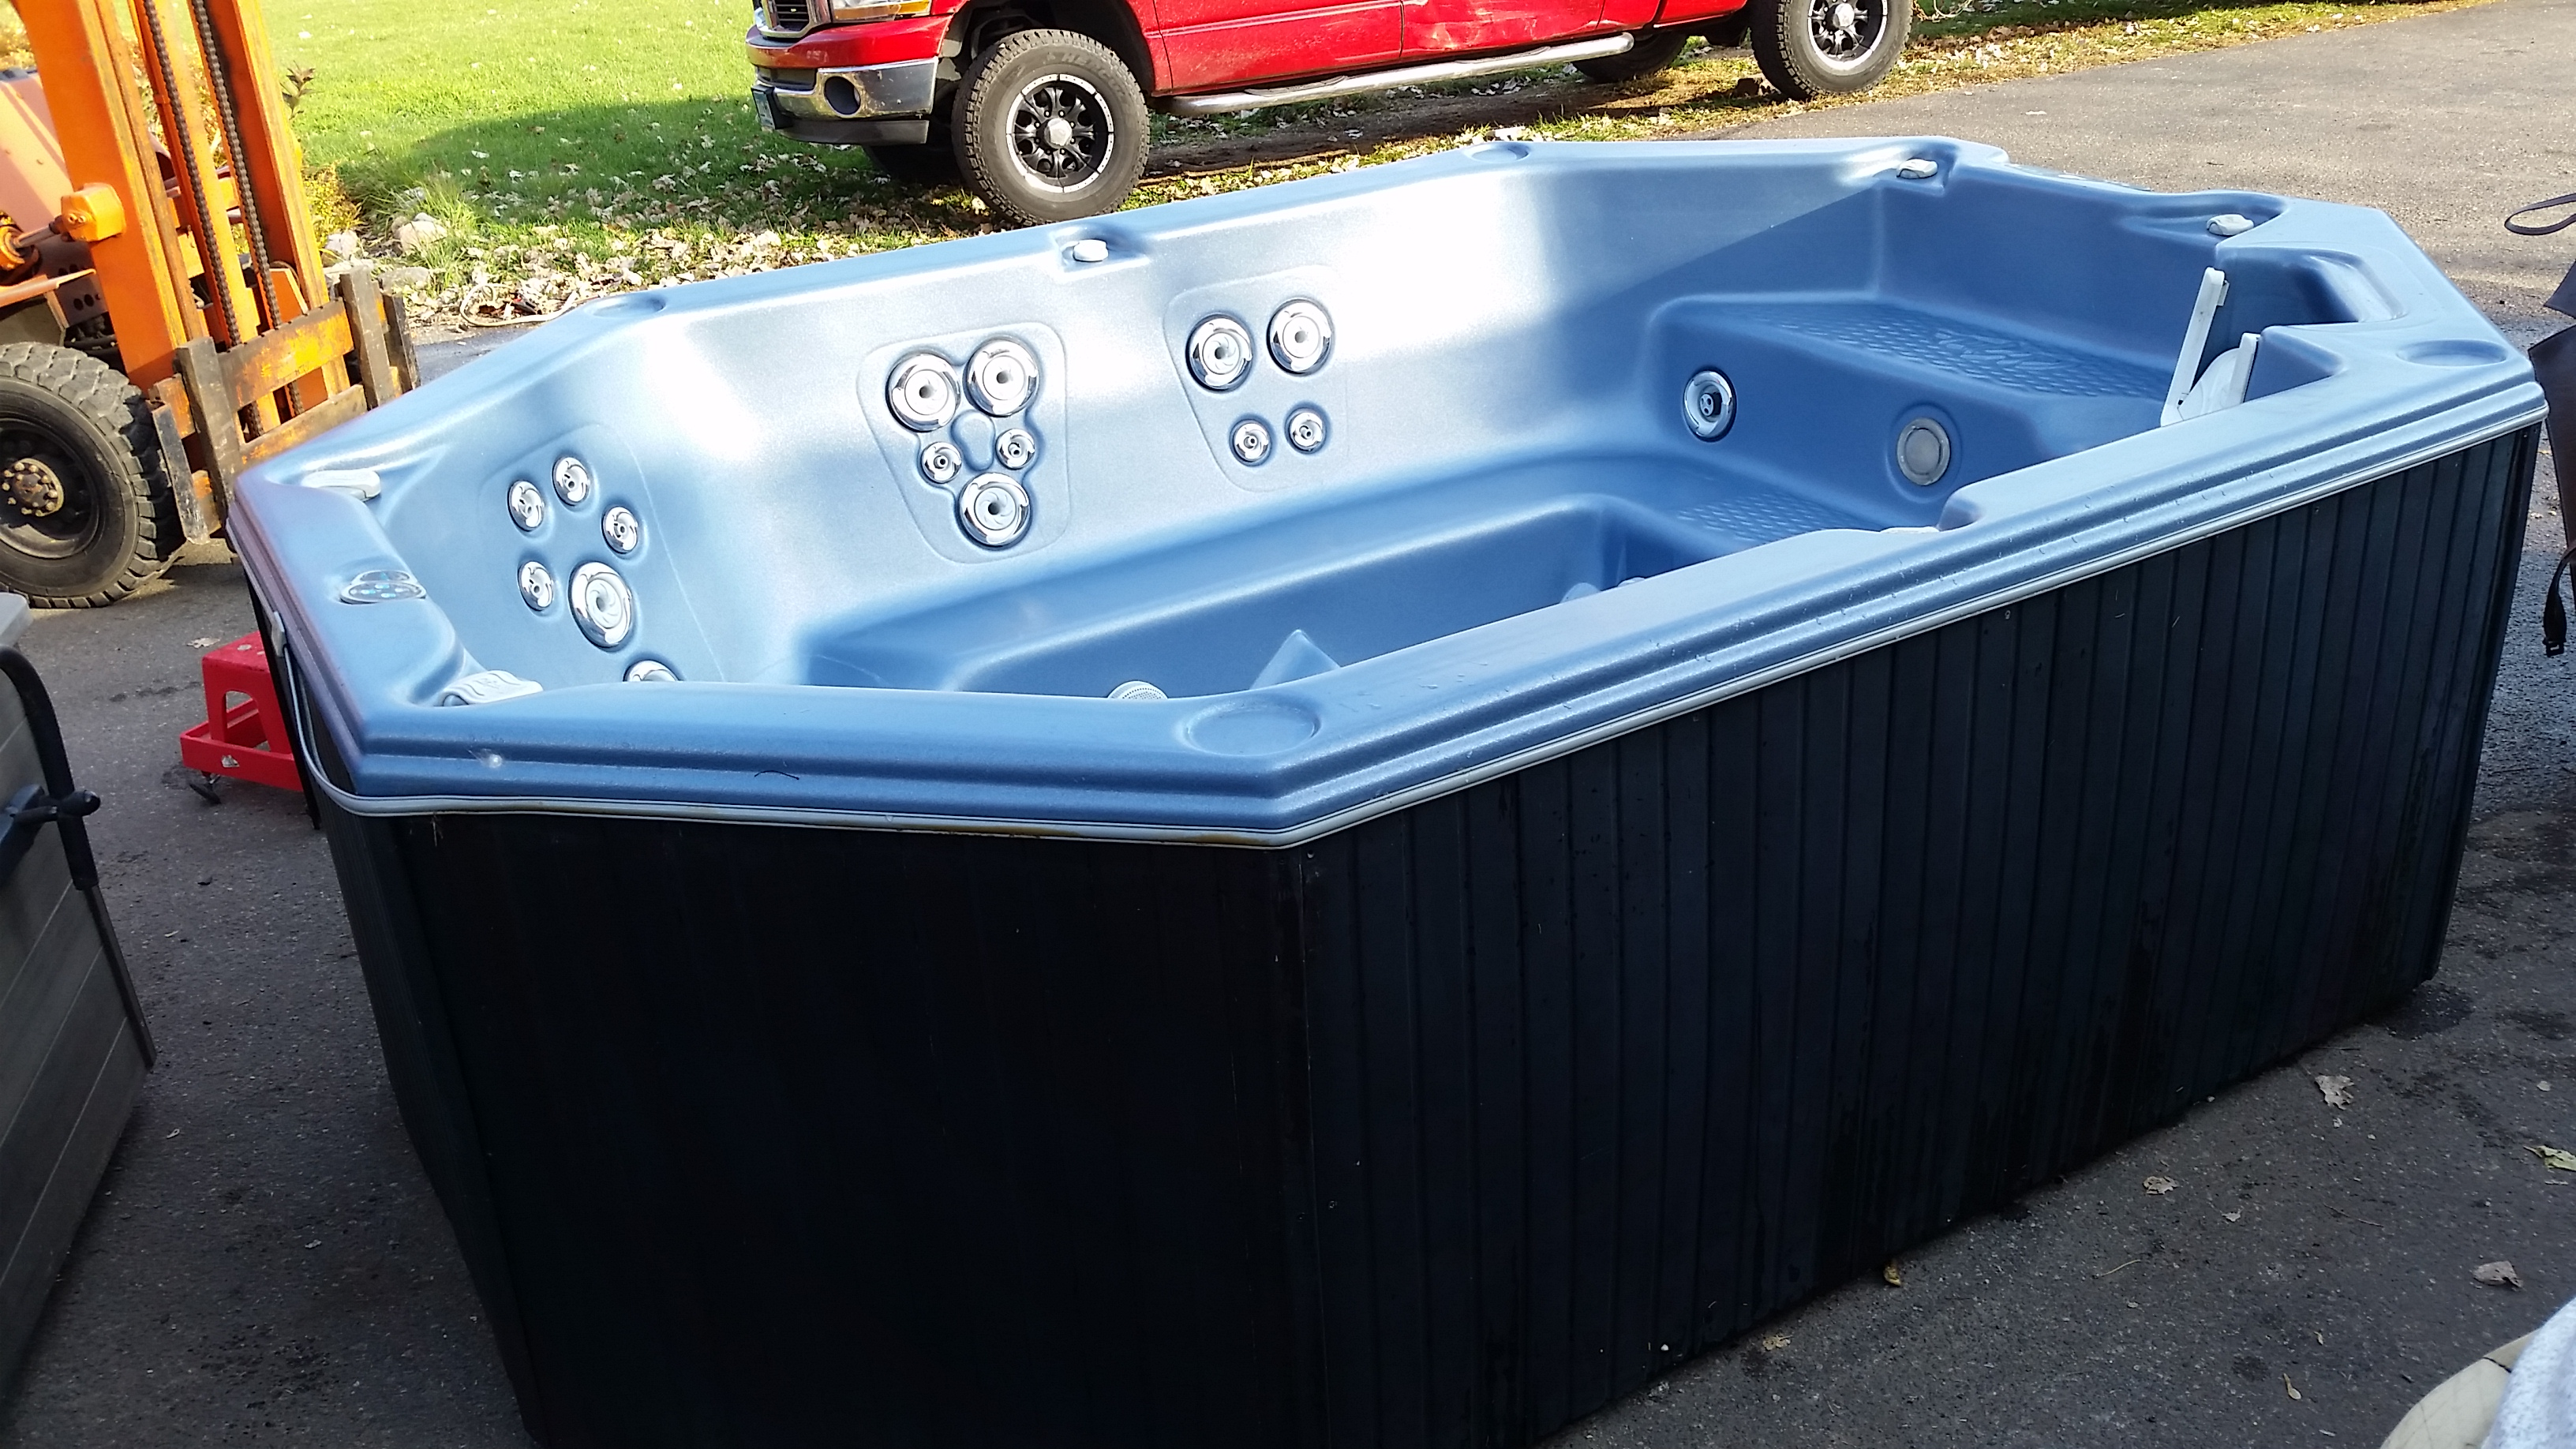 Hottubs/20141027_154820.jpg